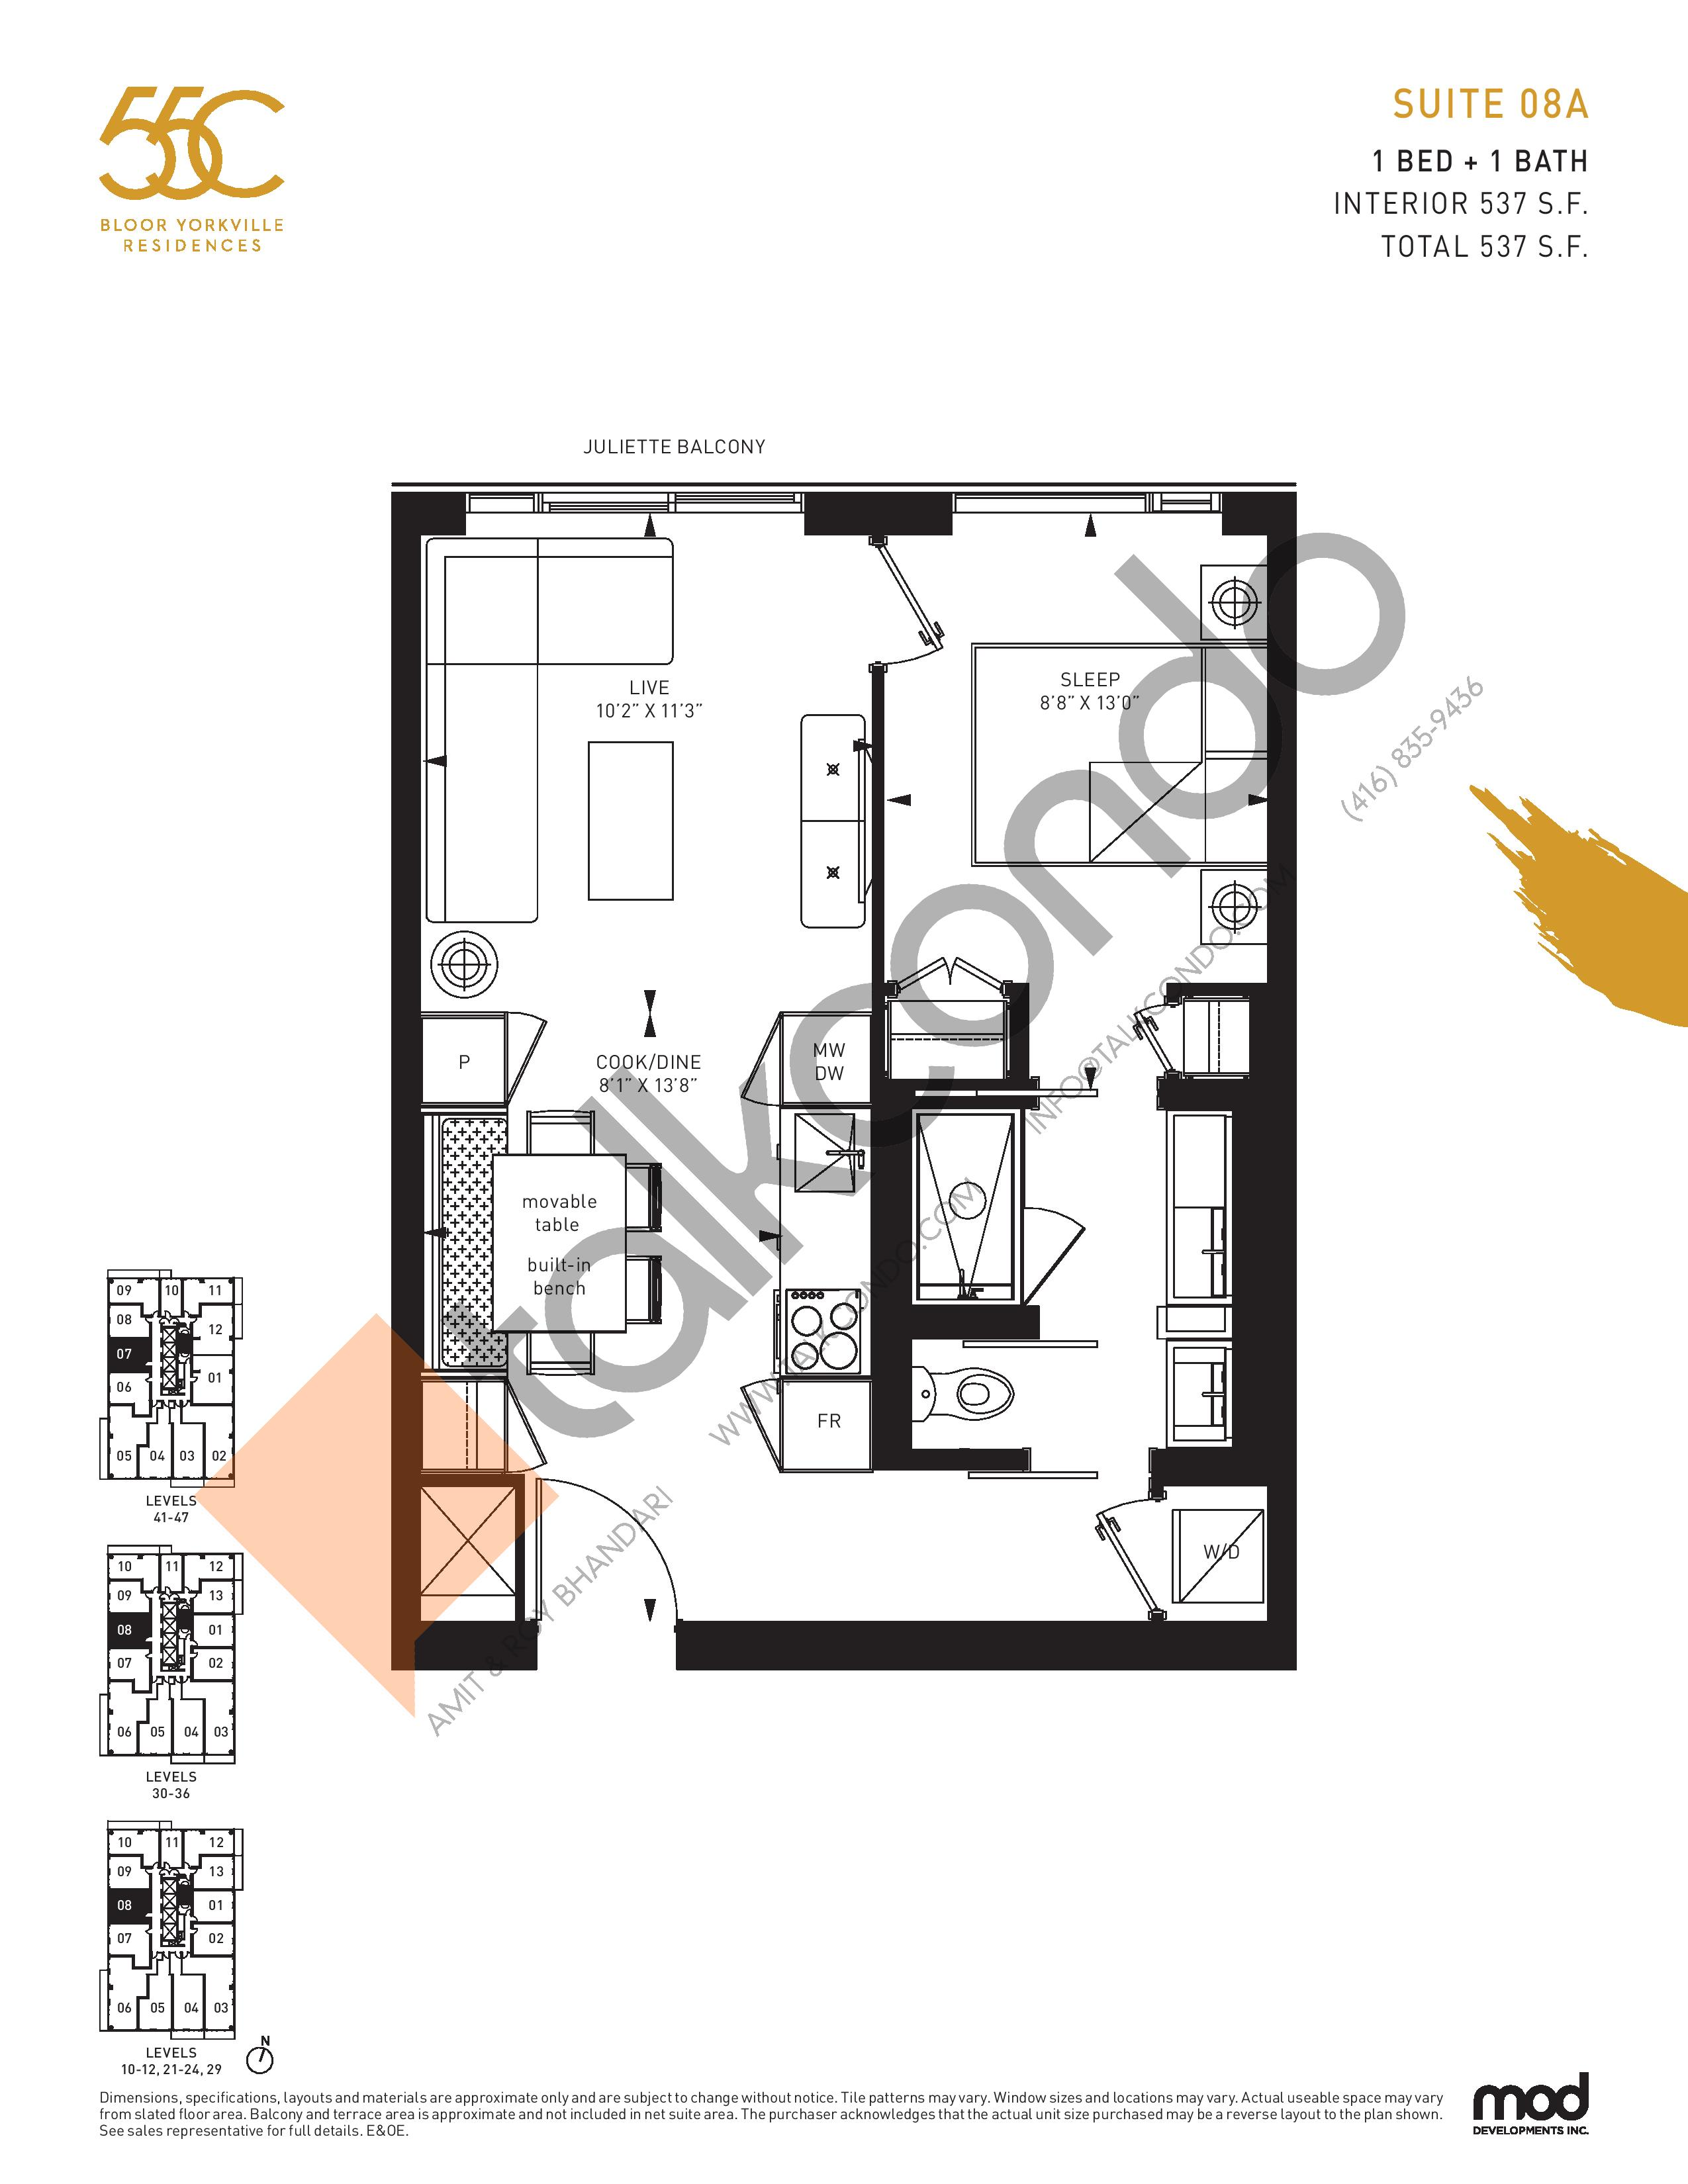 Suite 08A Floor Plan at 55C Condos - 537 sq.ft